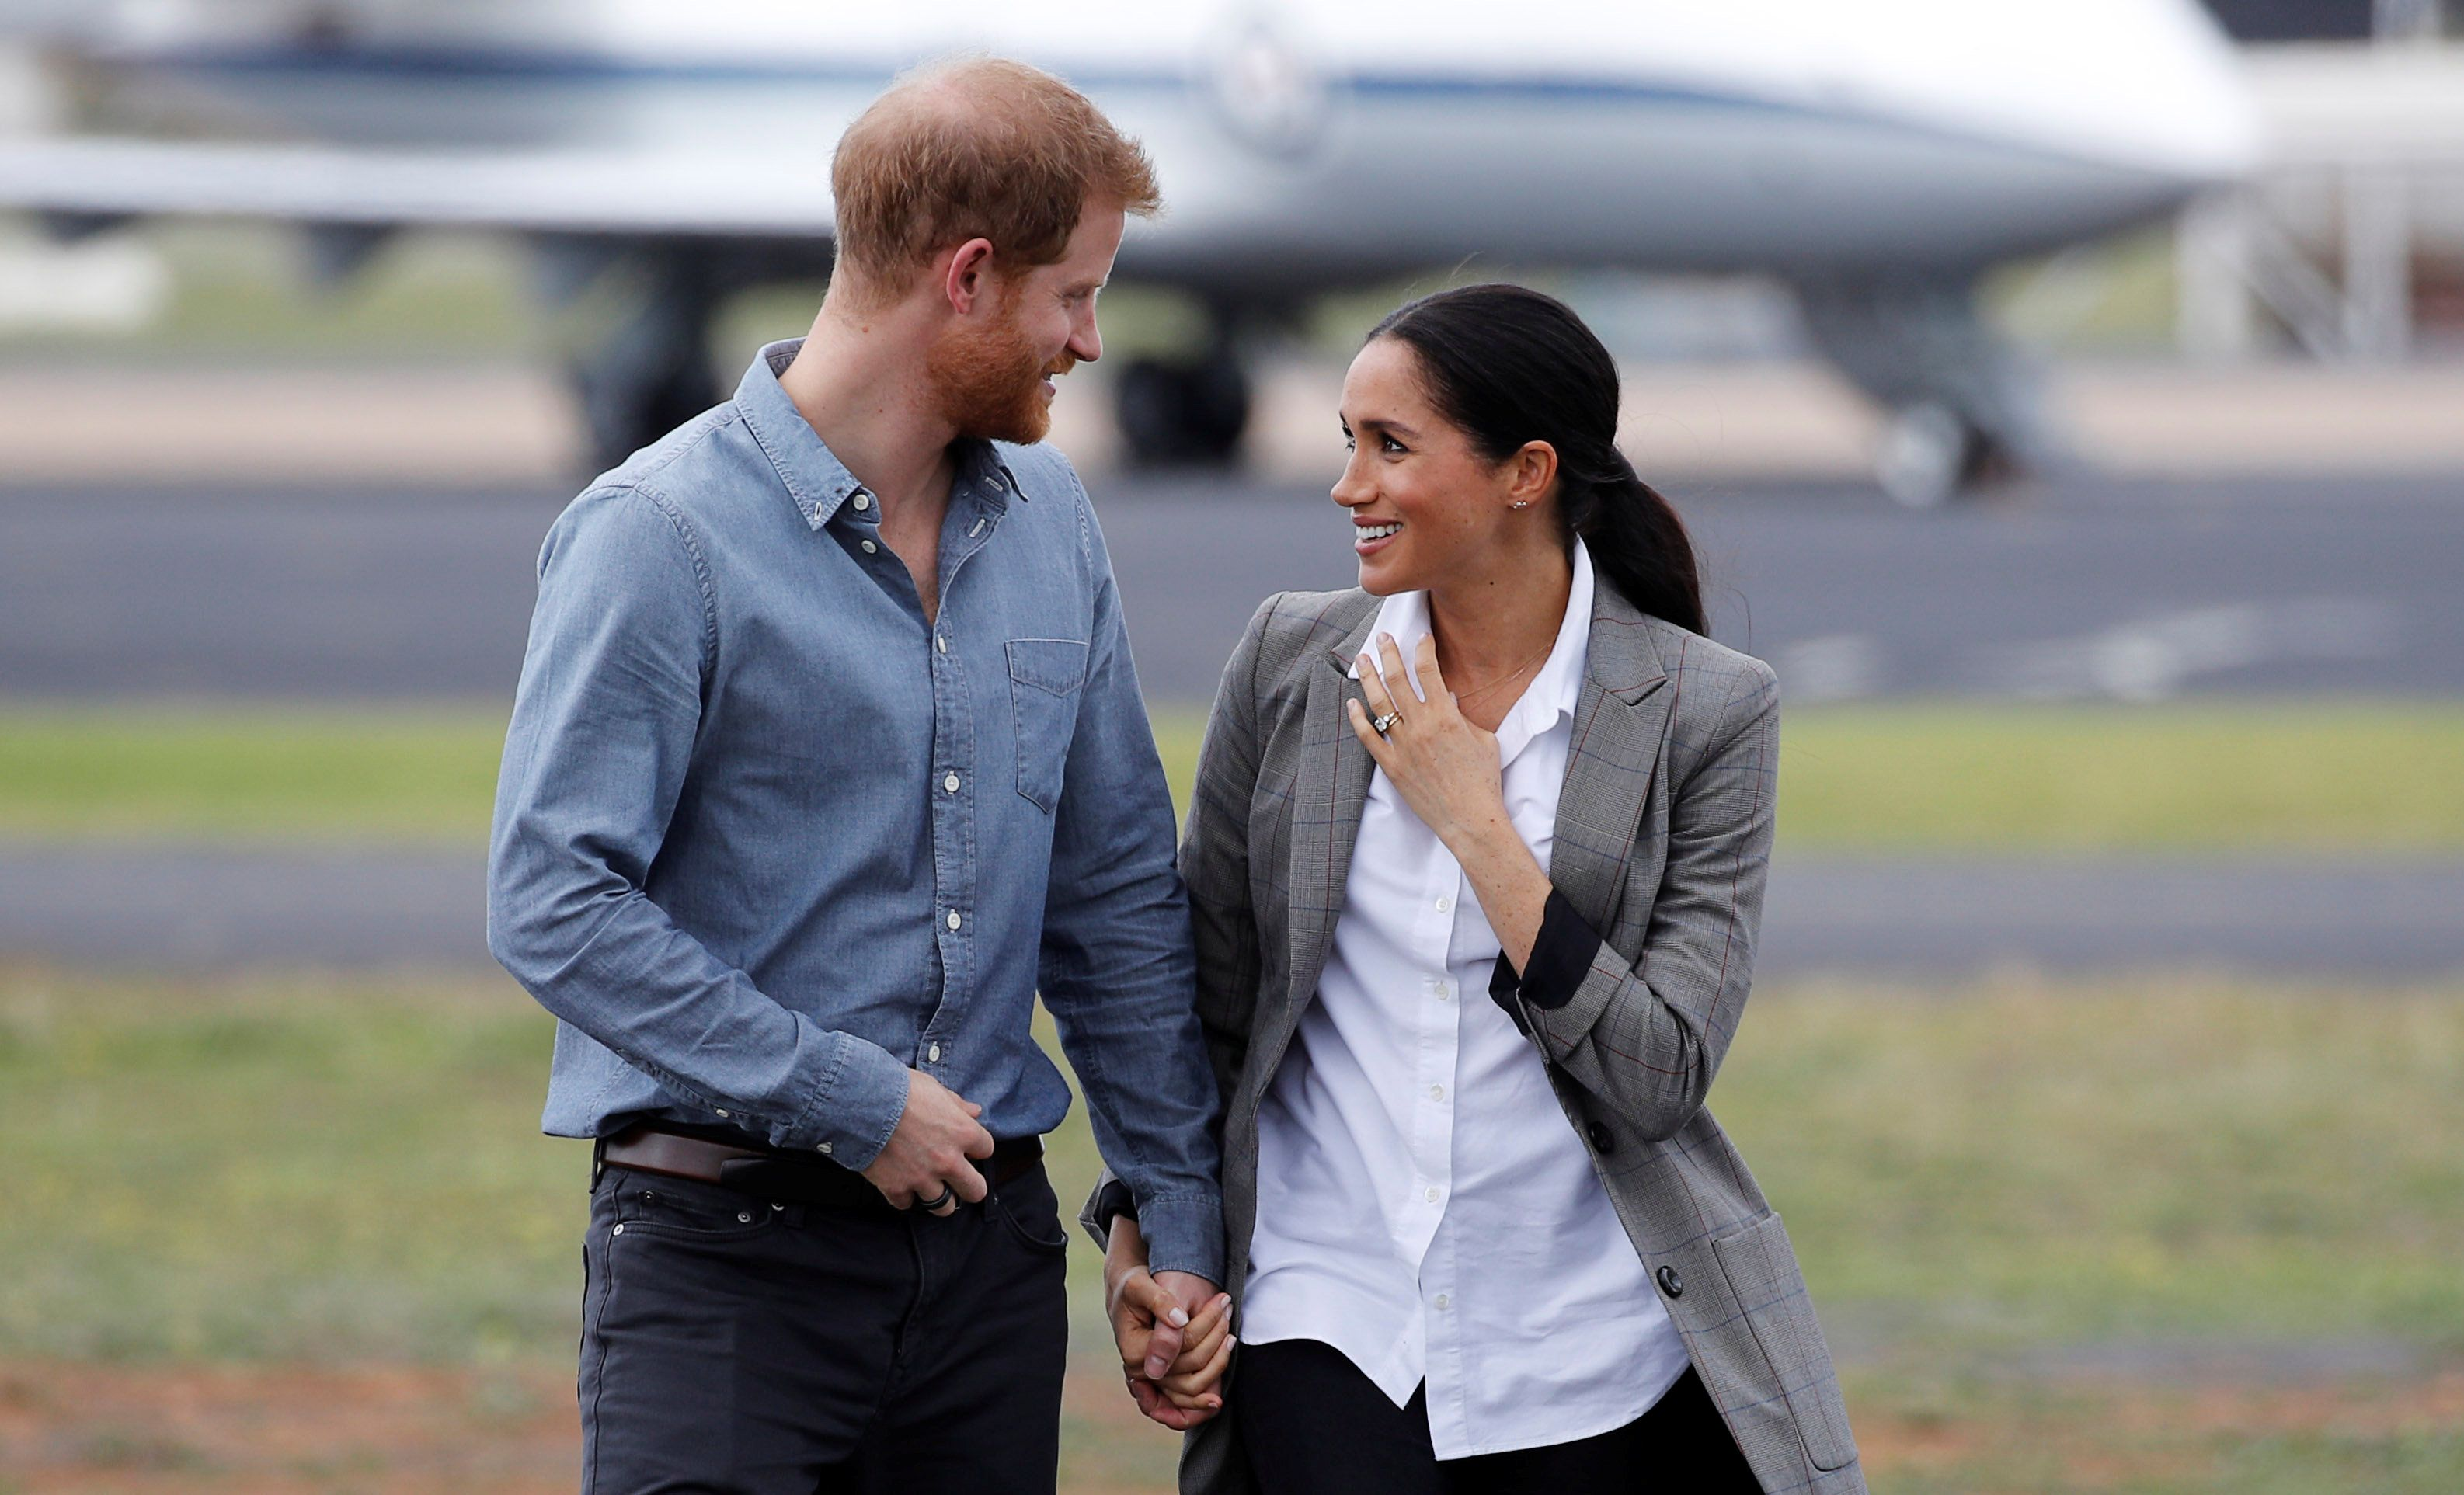 d5e89c7fb35ec Meghan Markle Maternity Leave - How Will It Differ to Kate Middleton's?